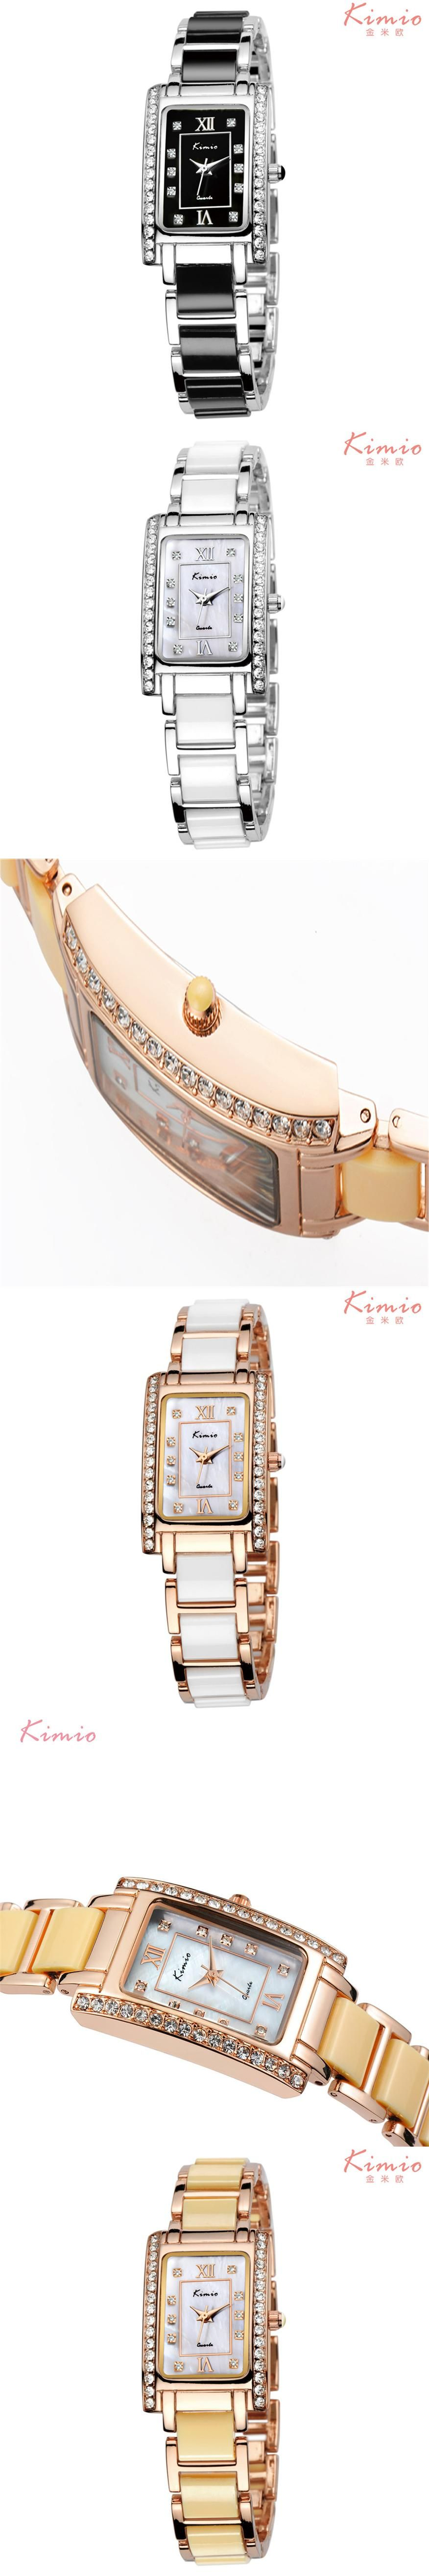 watch crystal luminous steel auto bracelet date full quartz swiss watches display dial taylor dress hand cool band white cole relogio women product